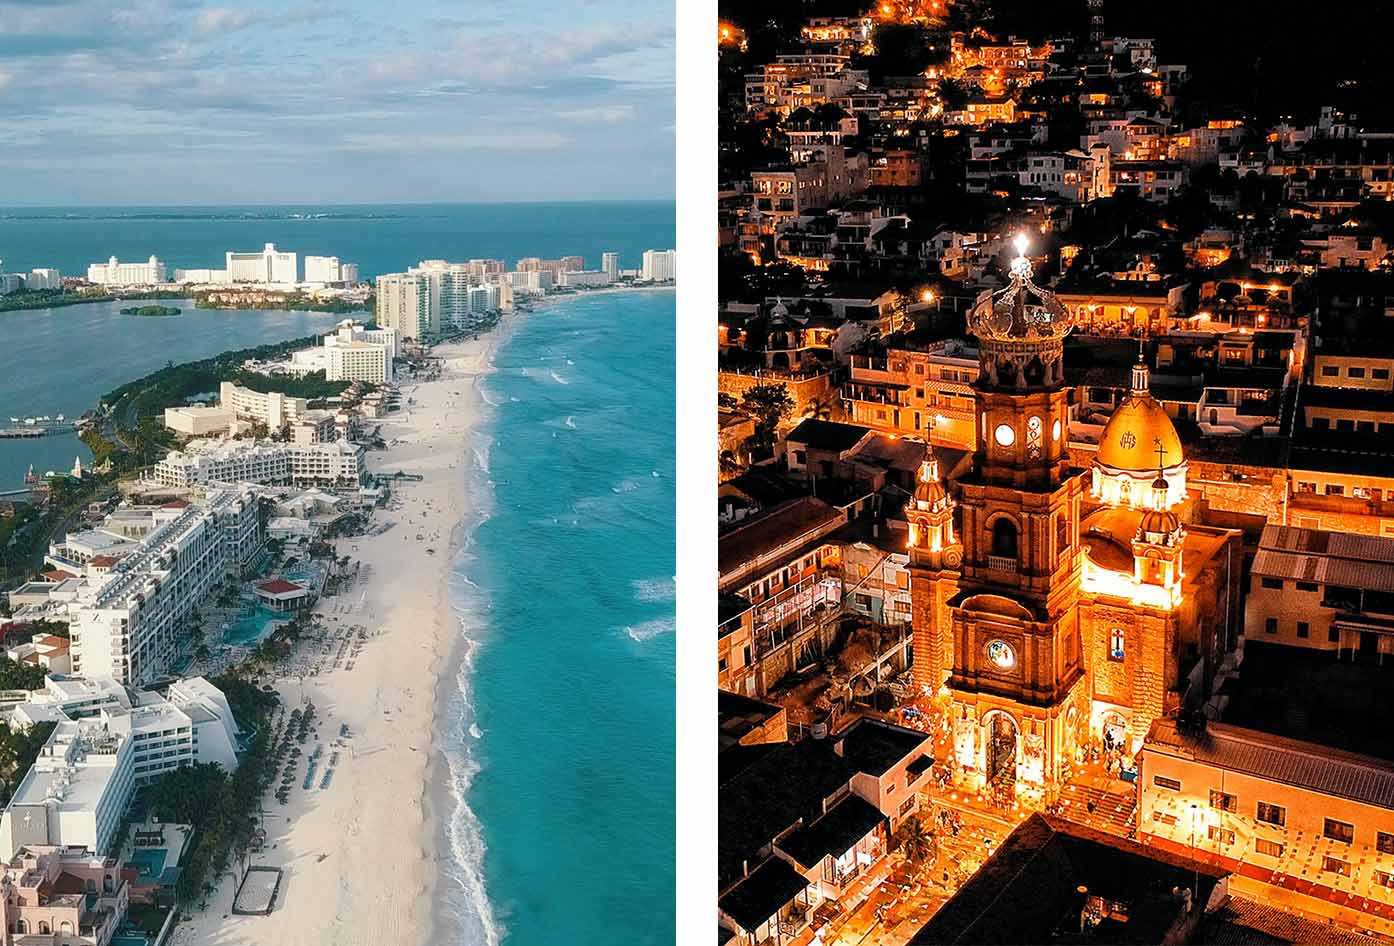 puerto vallarta vs cancun